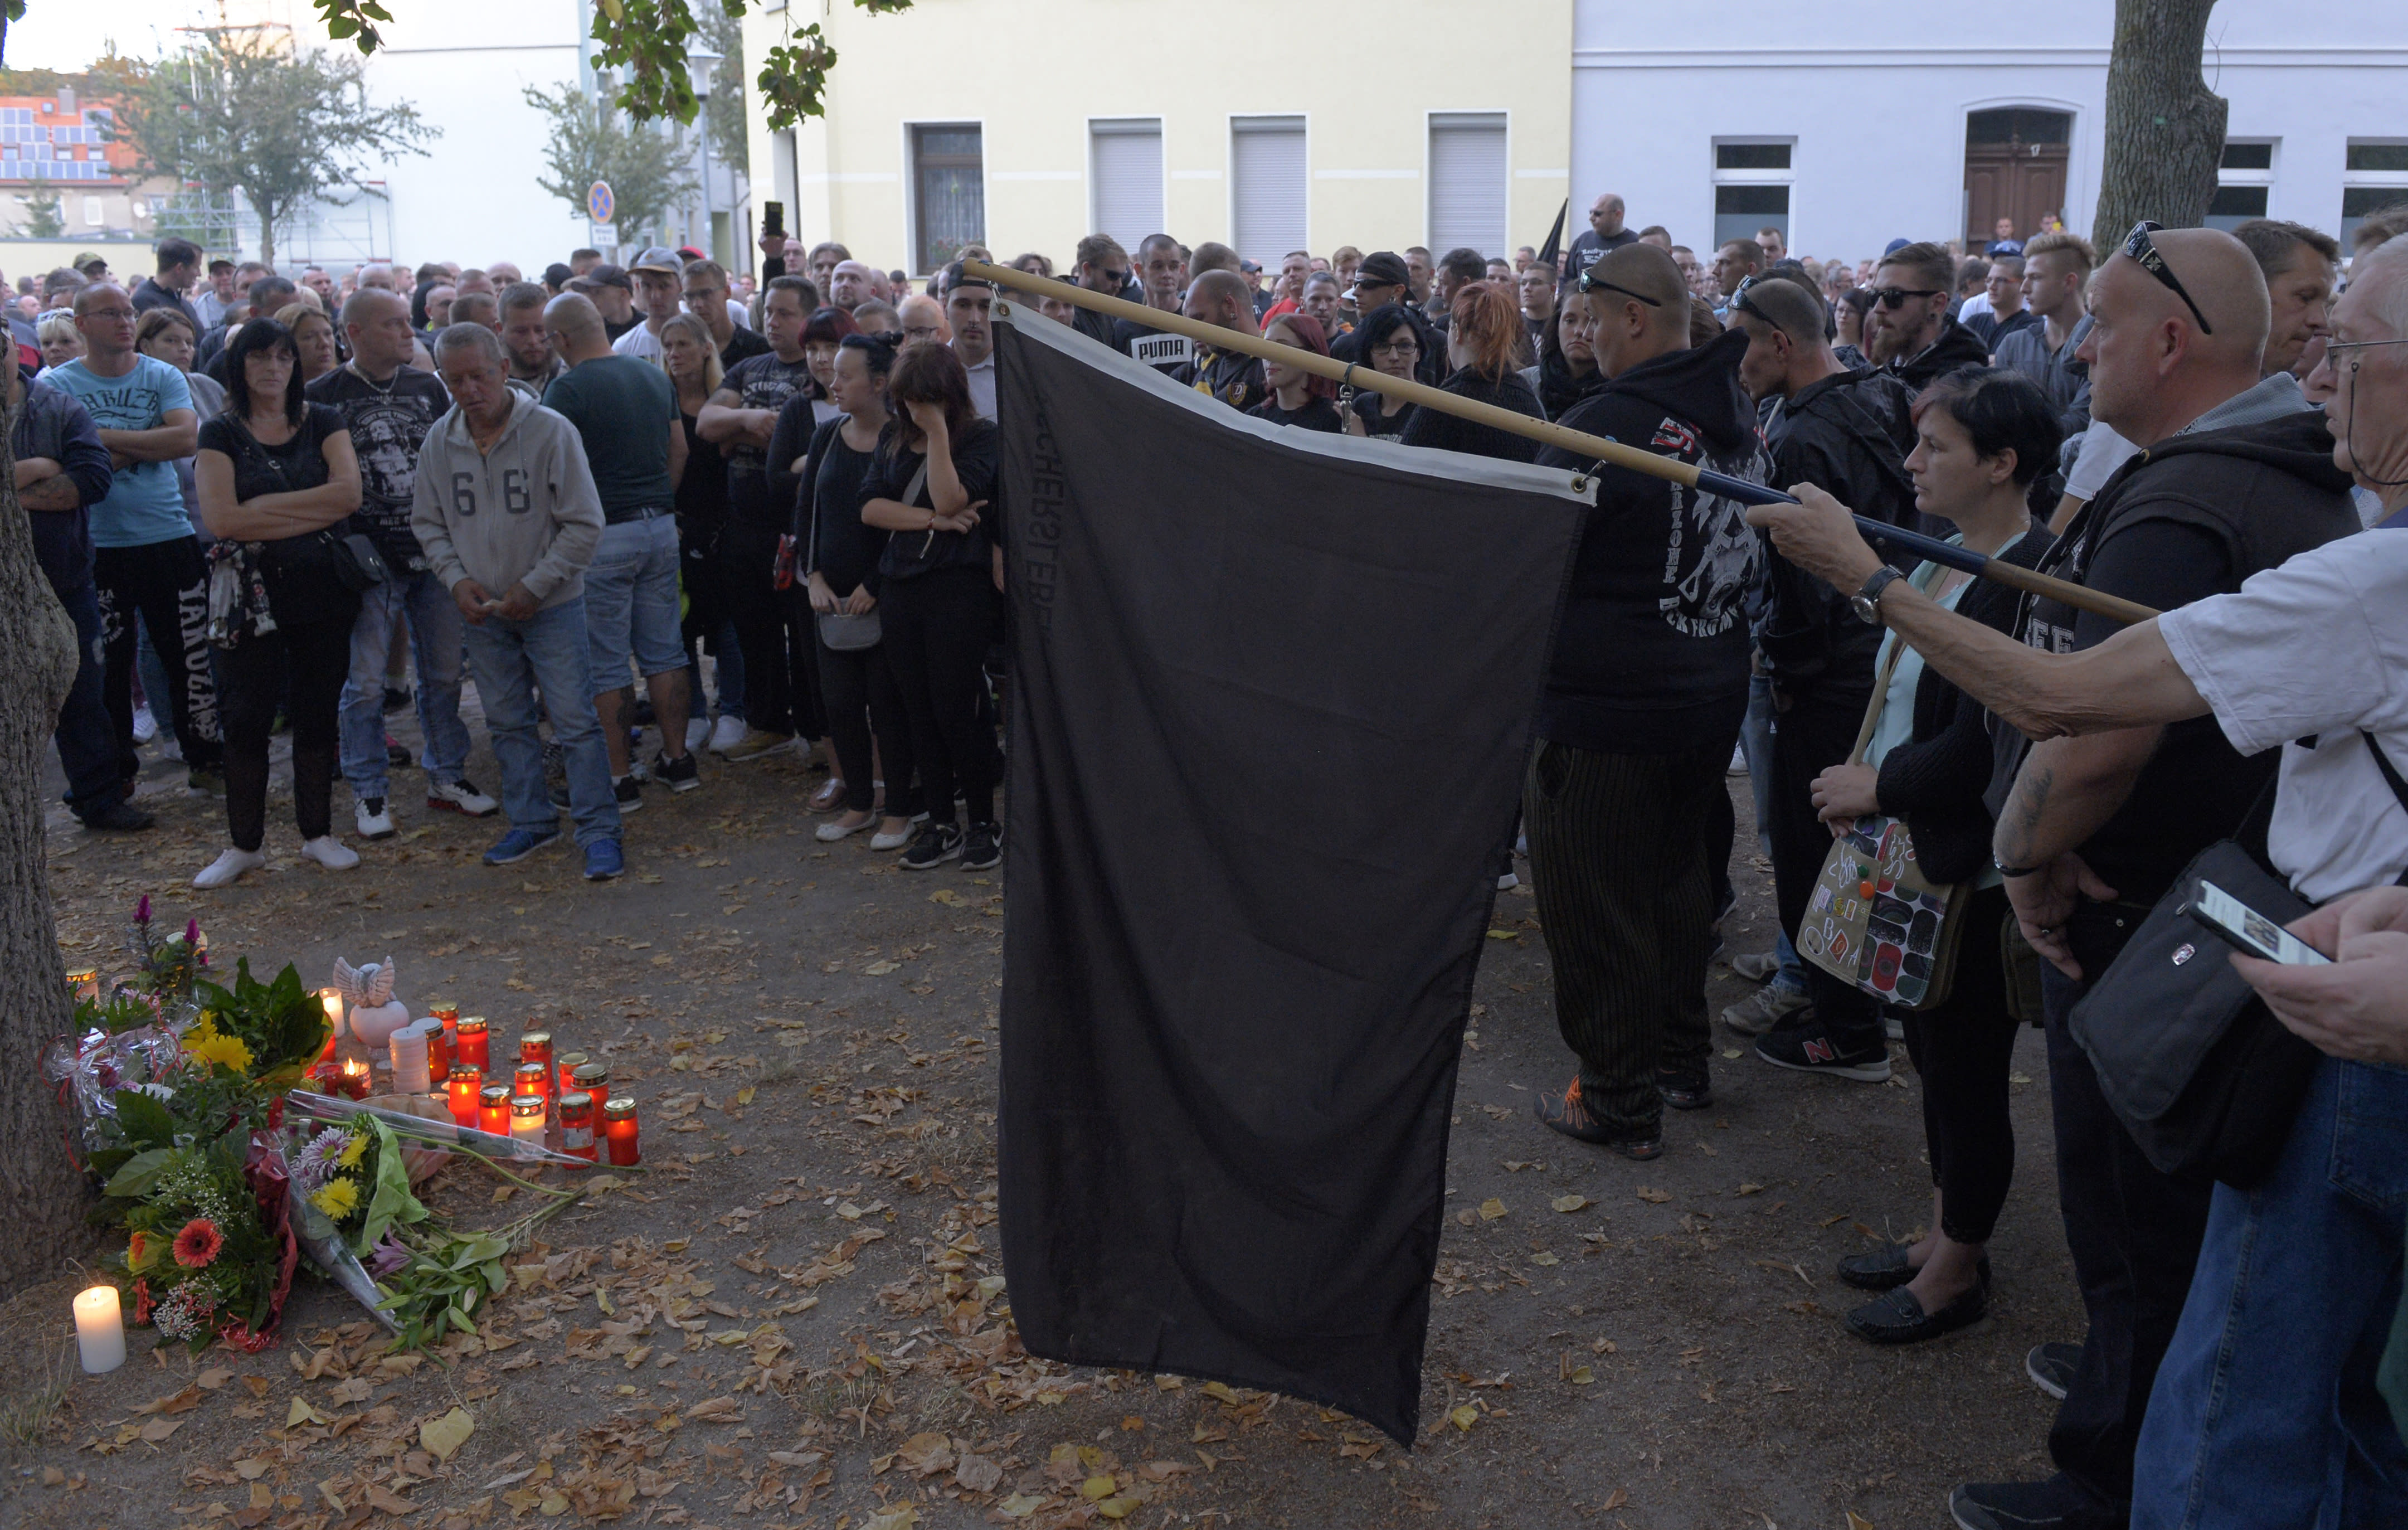 People gather at the site of a deadly brawl in Koethen, 90 miles southwest of the German capital Berlin, Sunday, Sept. 9, 2018, after police has arrested two Afghan men on suspicion of killing a 22-year-old German man. (AP Photo/Jens Meyer)